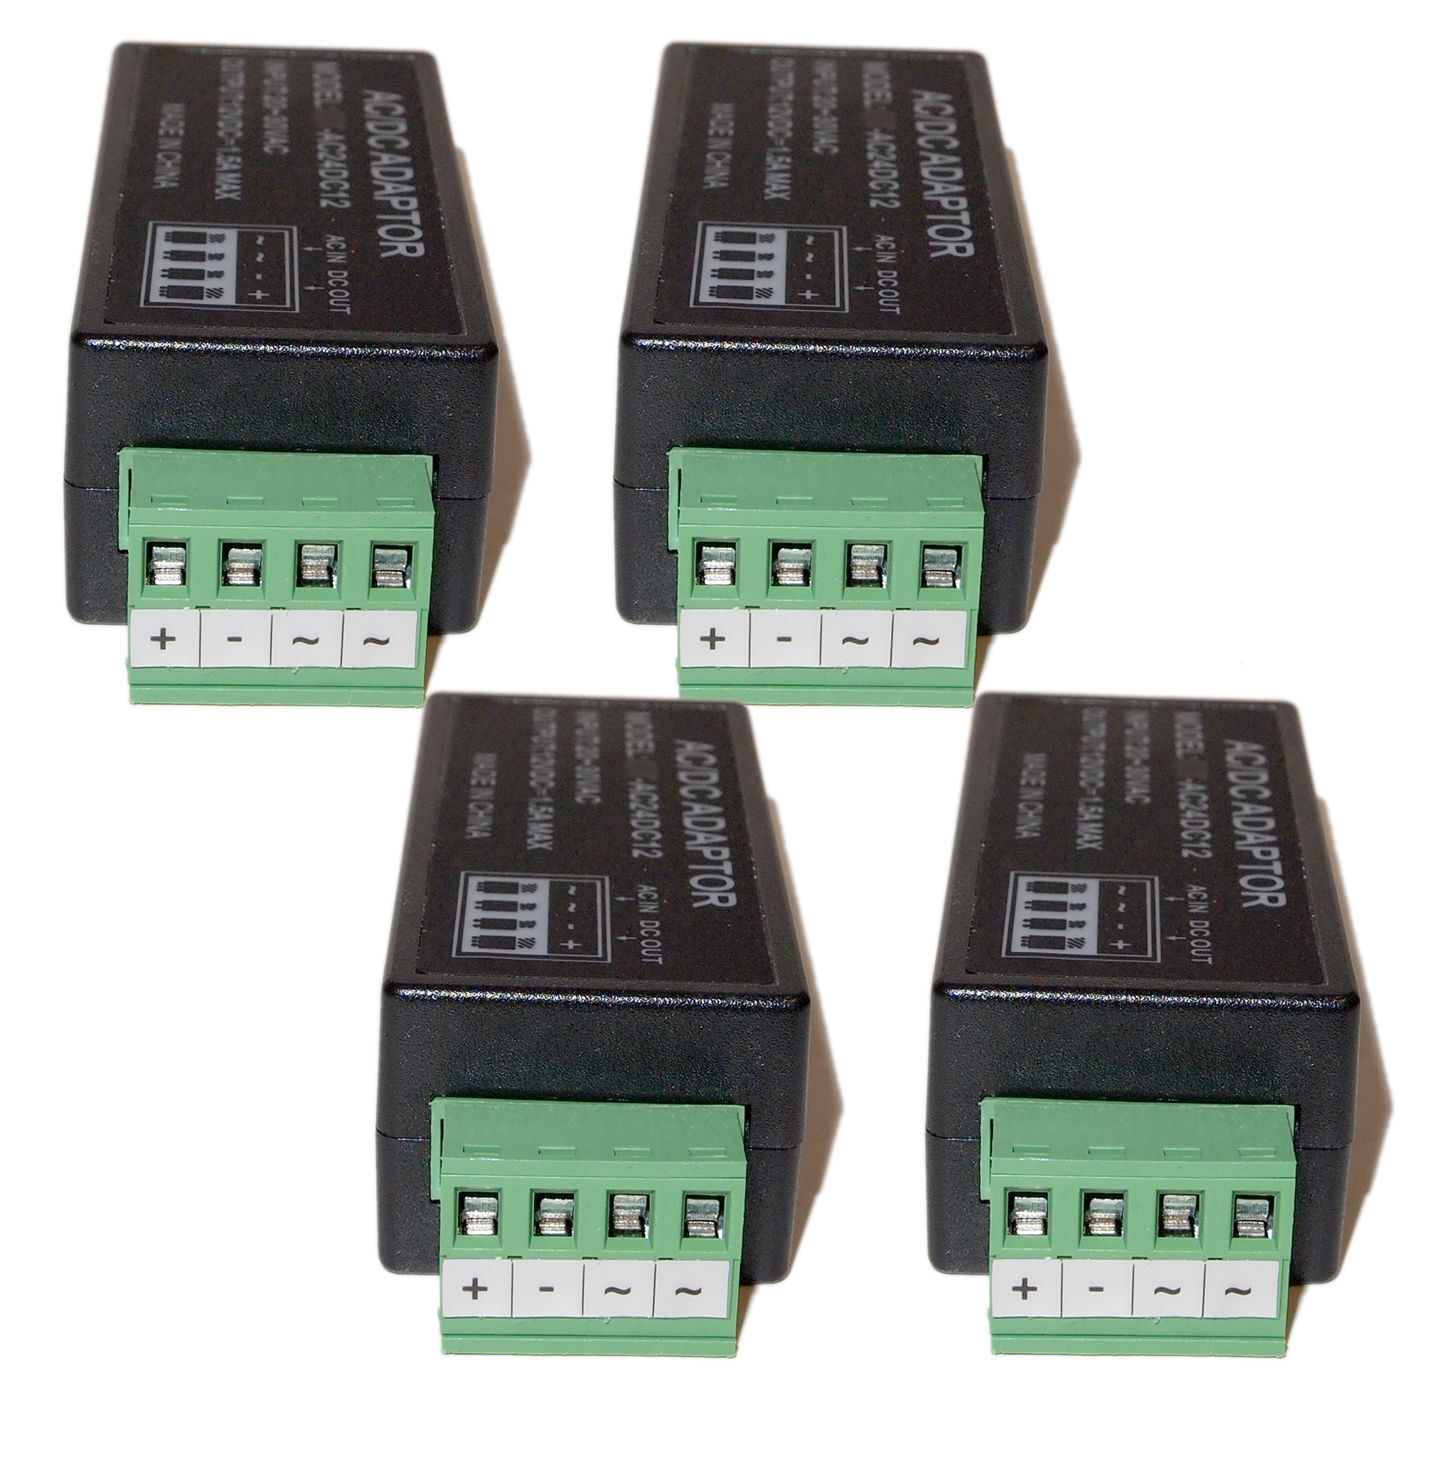 4x Power Supply Voltage Converter 24VAC to 12VDC 1 5 A